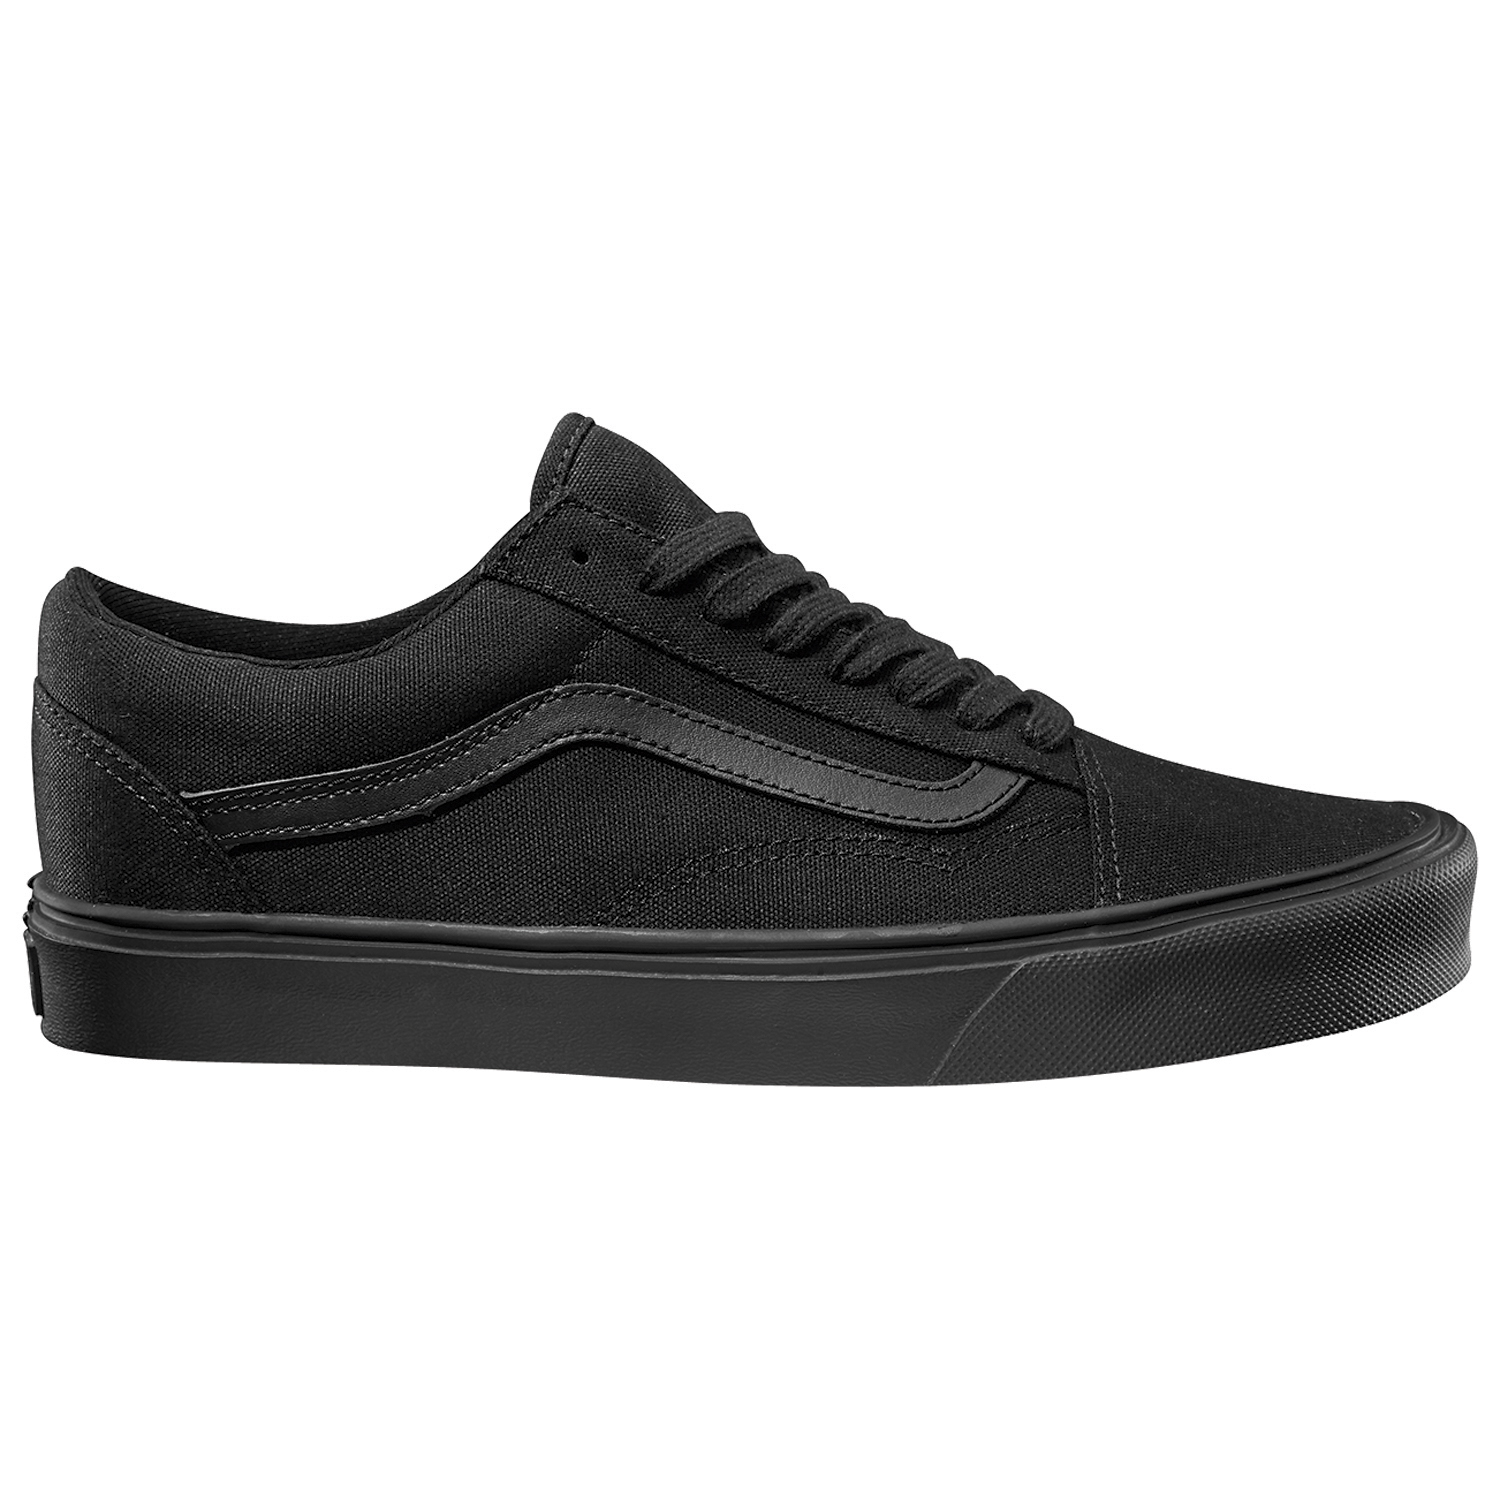 vans-old-skool-lite-black-black-canvas-149-90